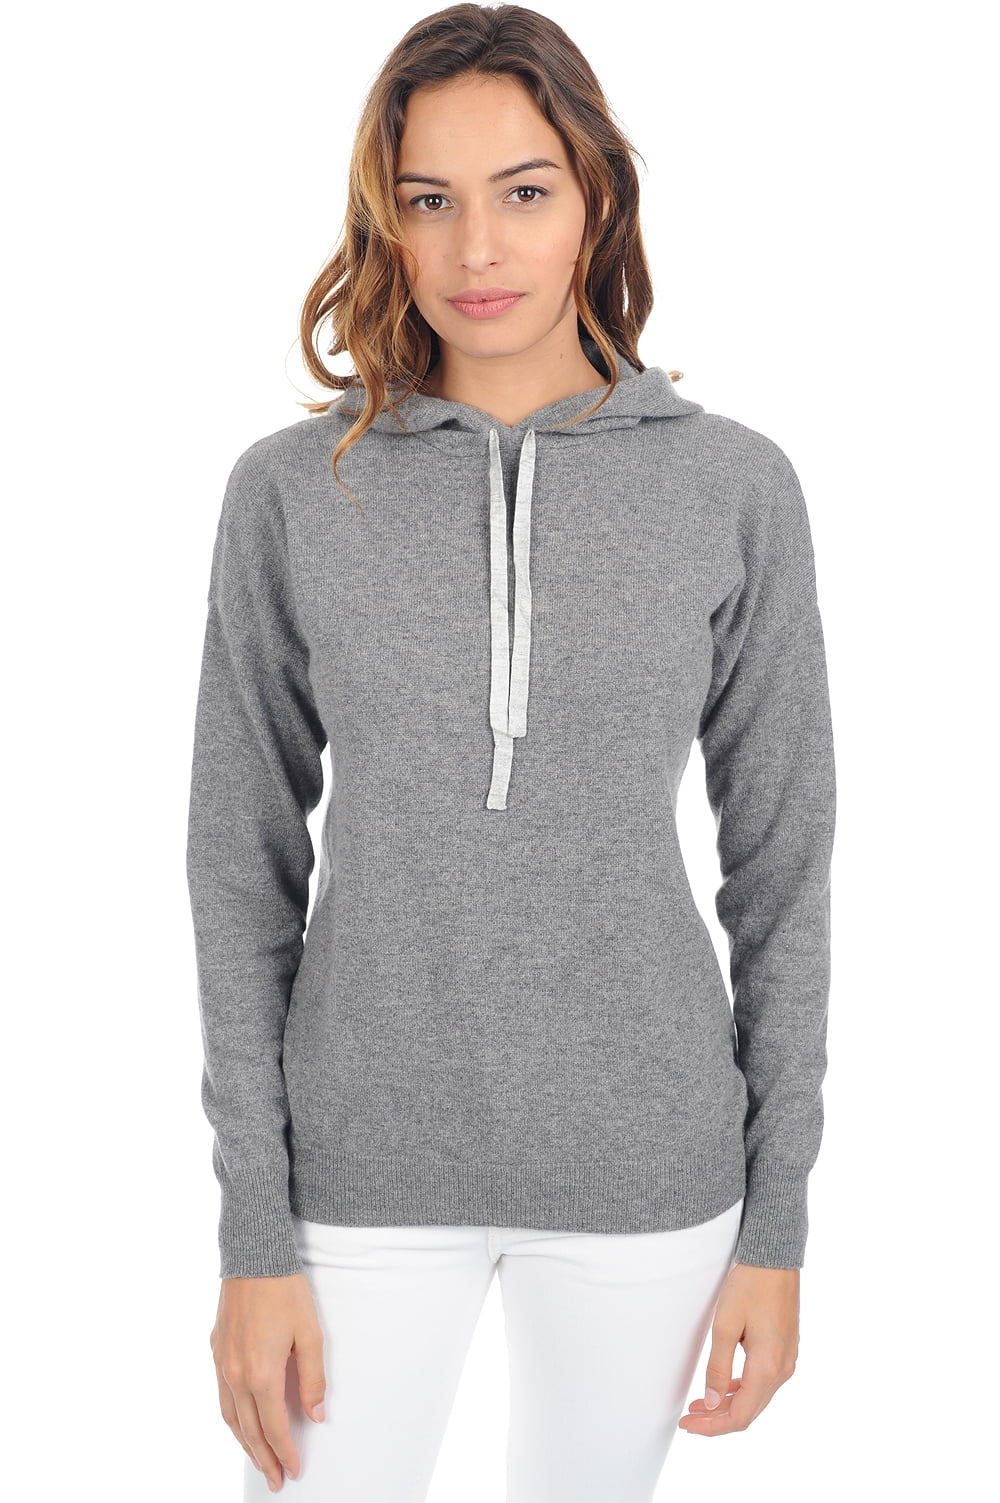 Cachemire pull femme col rond sigma gris chine t1